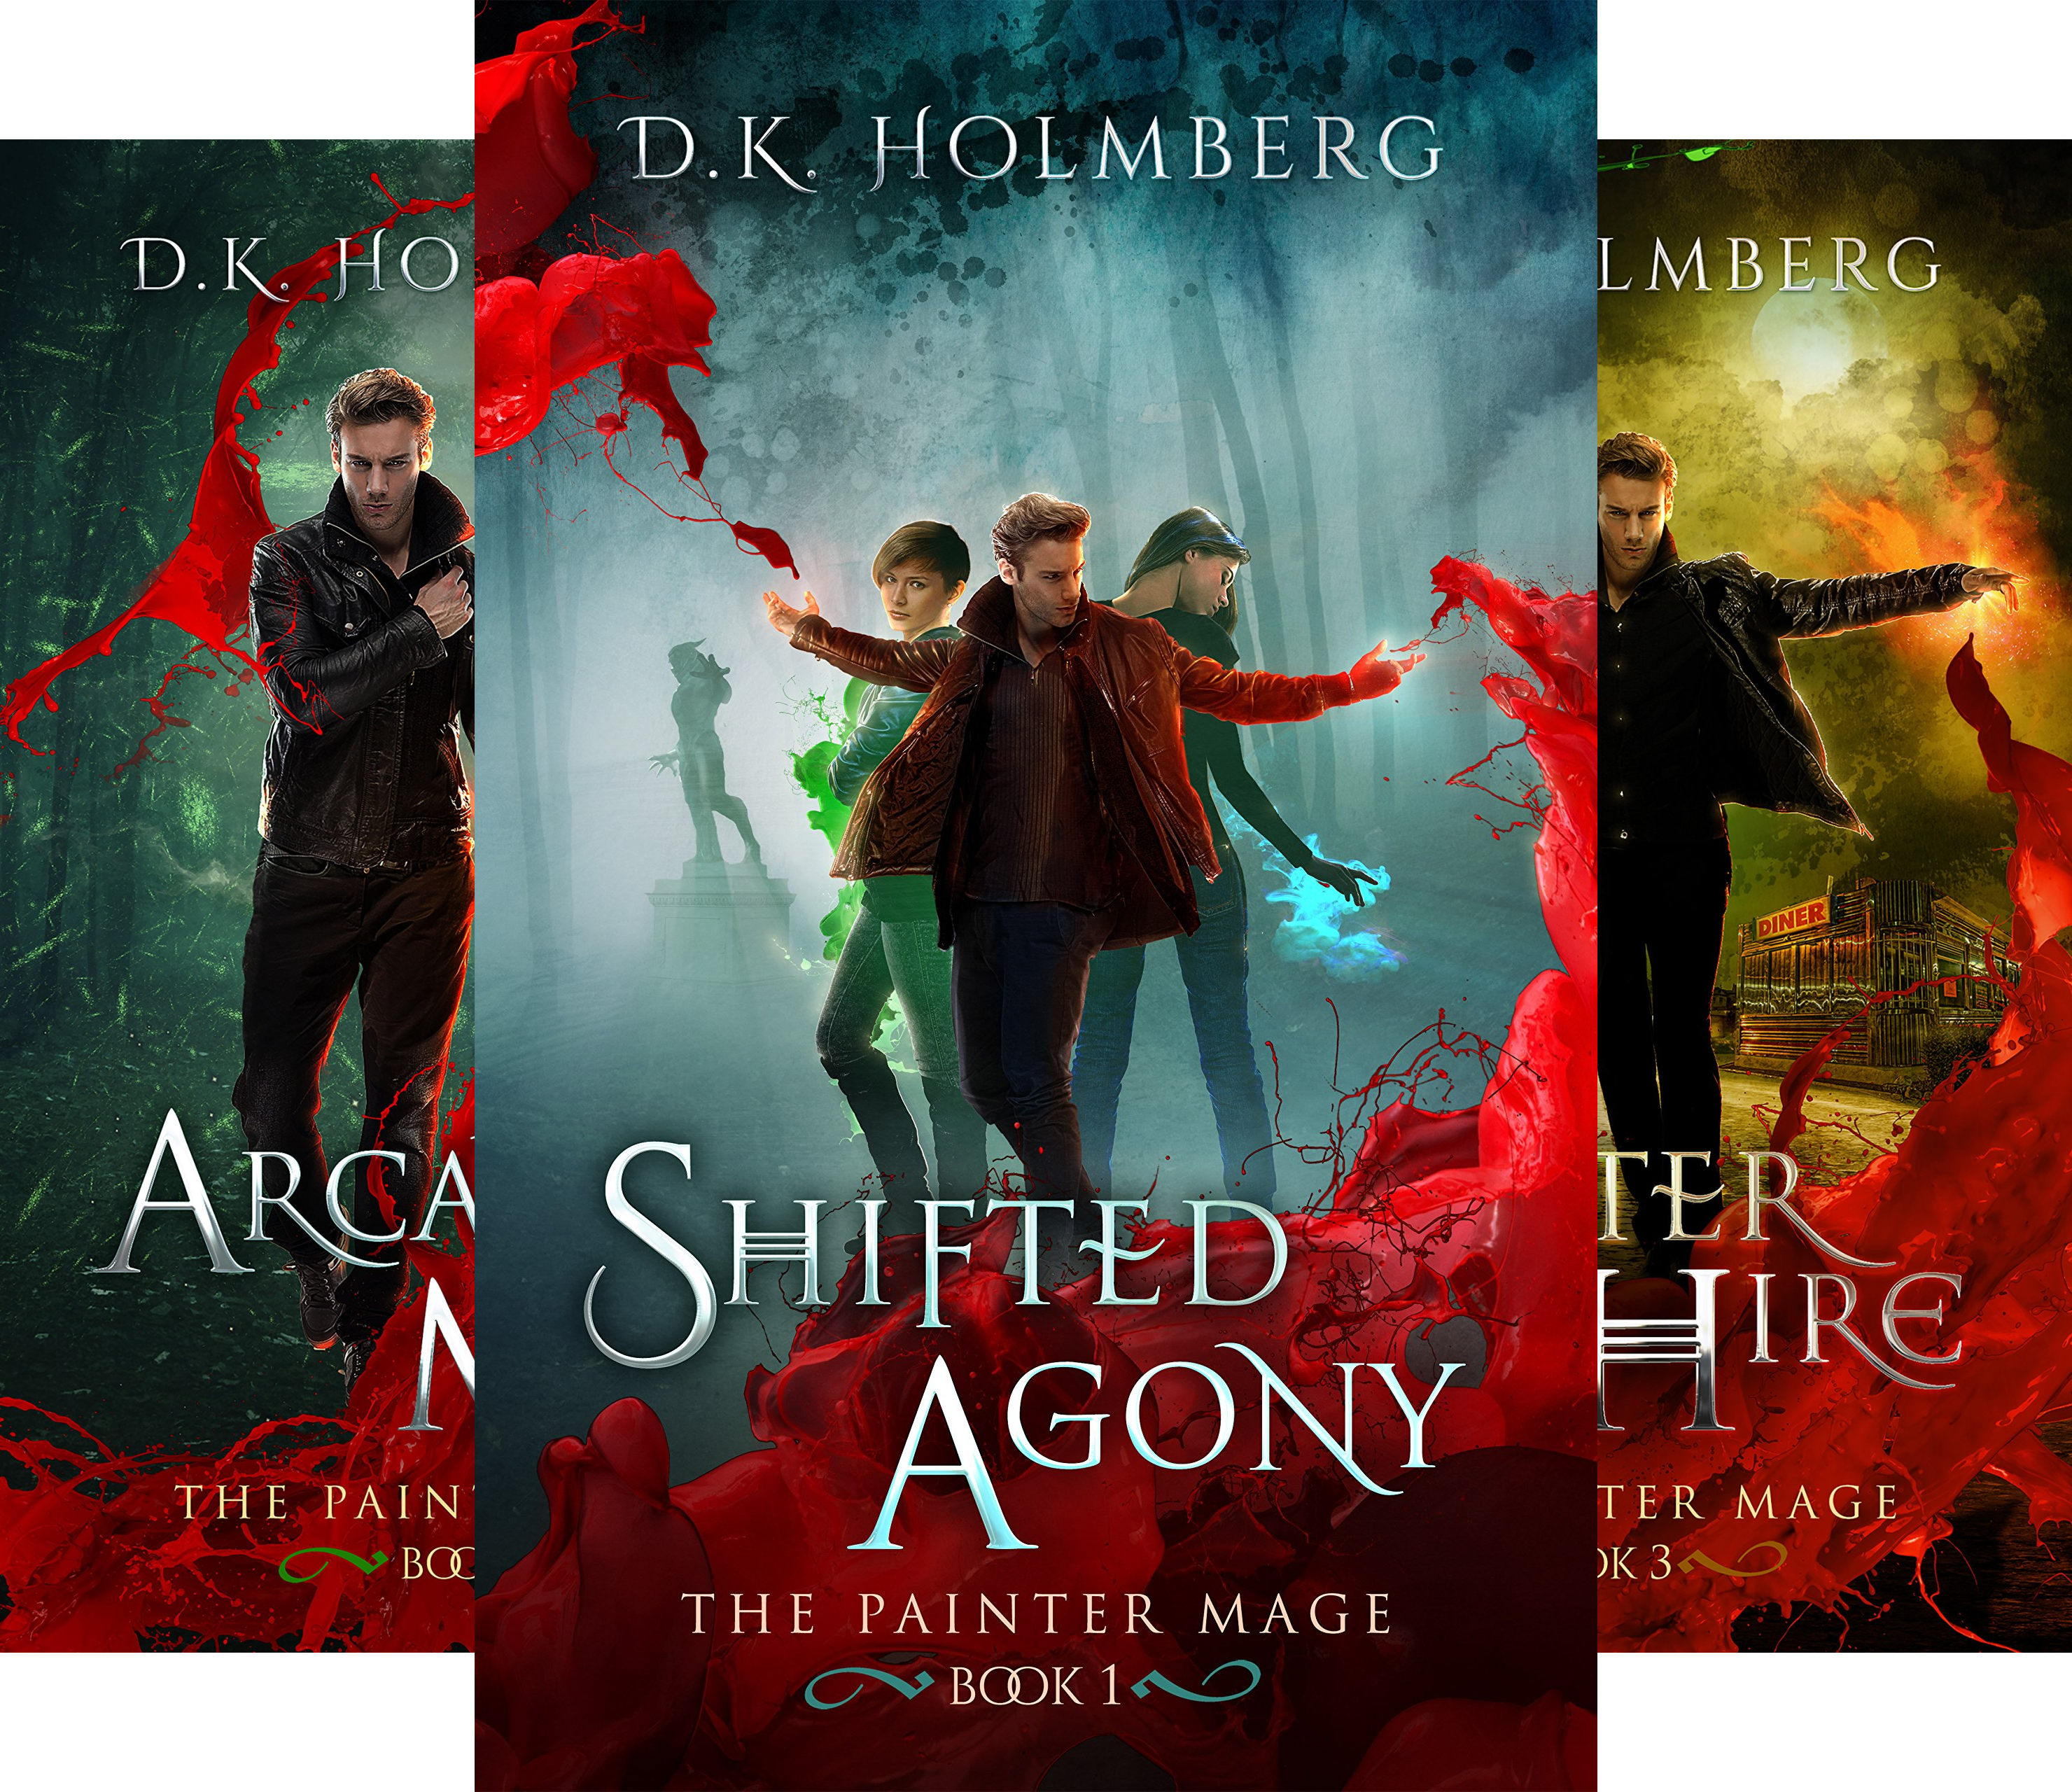 The Painter Mage (5 Book Series)